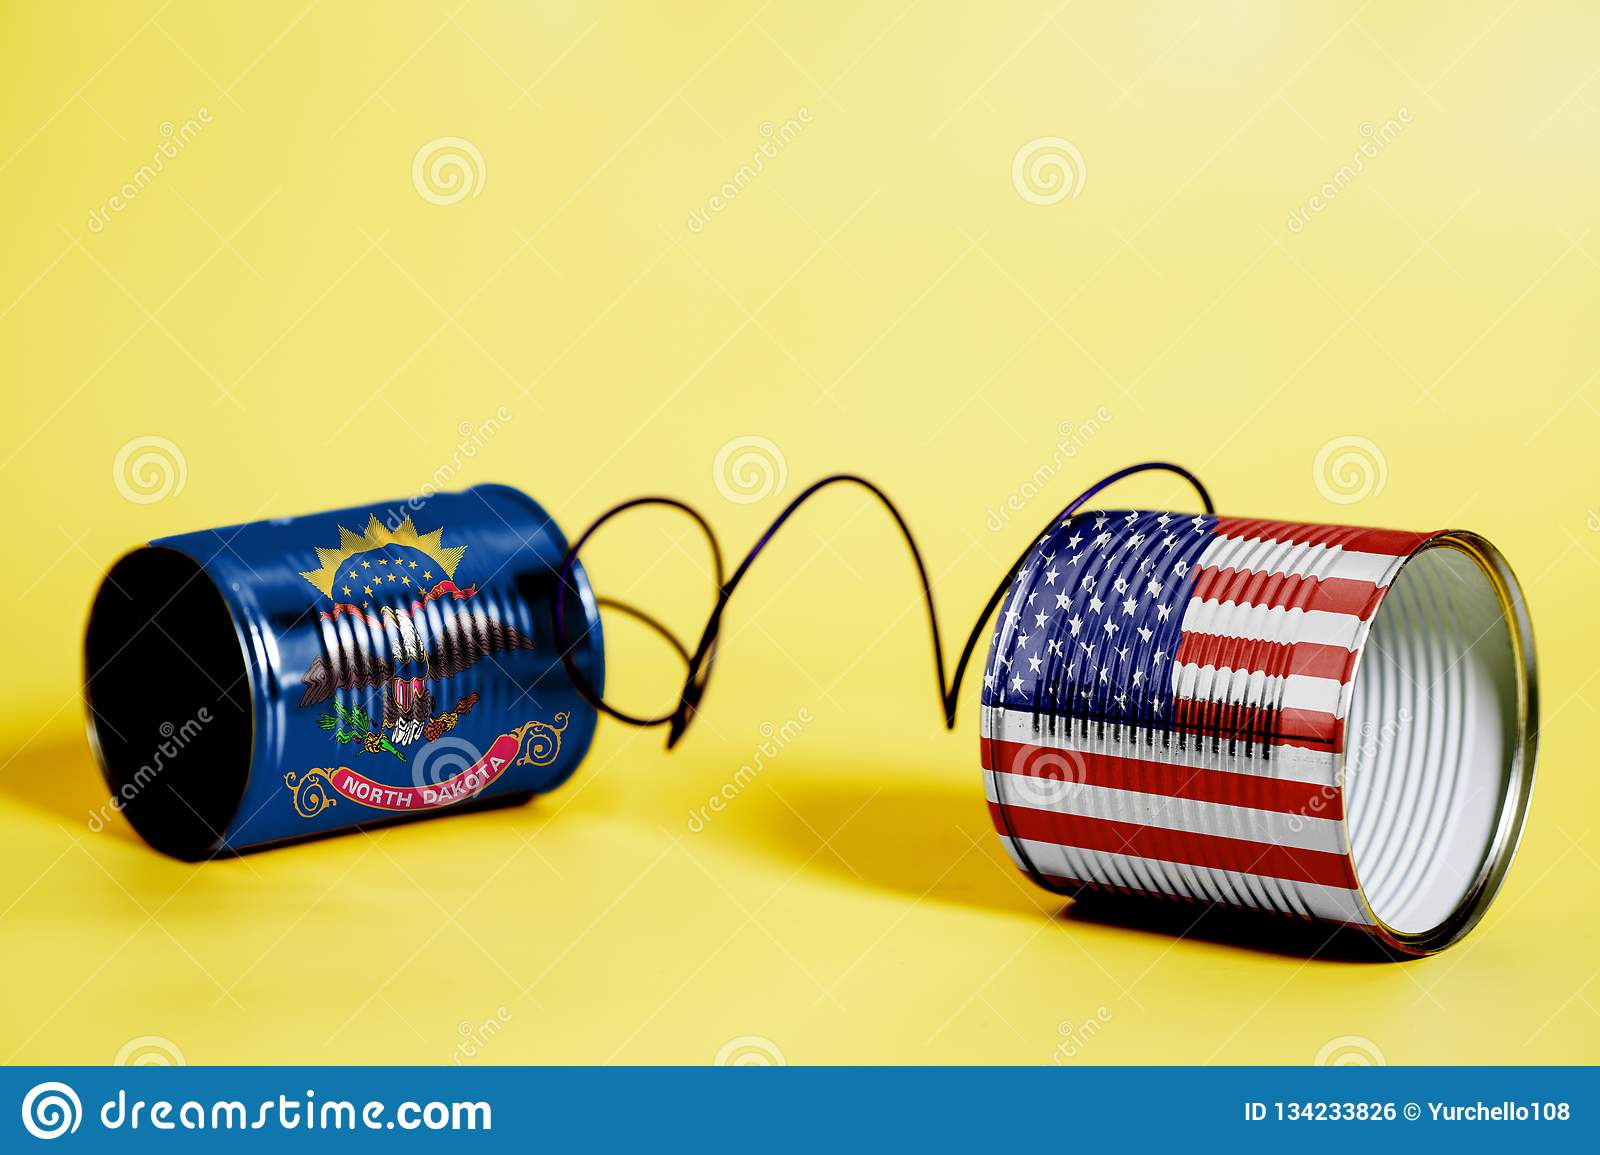 Tin can phone with USA and North Dakota State Flags. communication concept